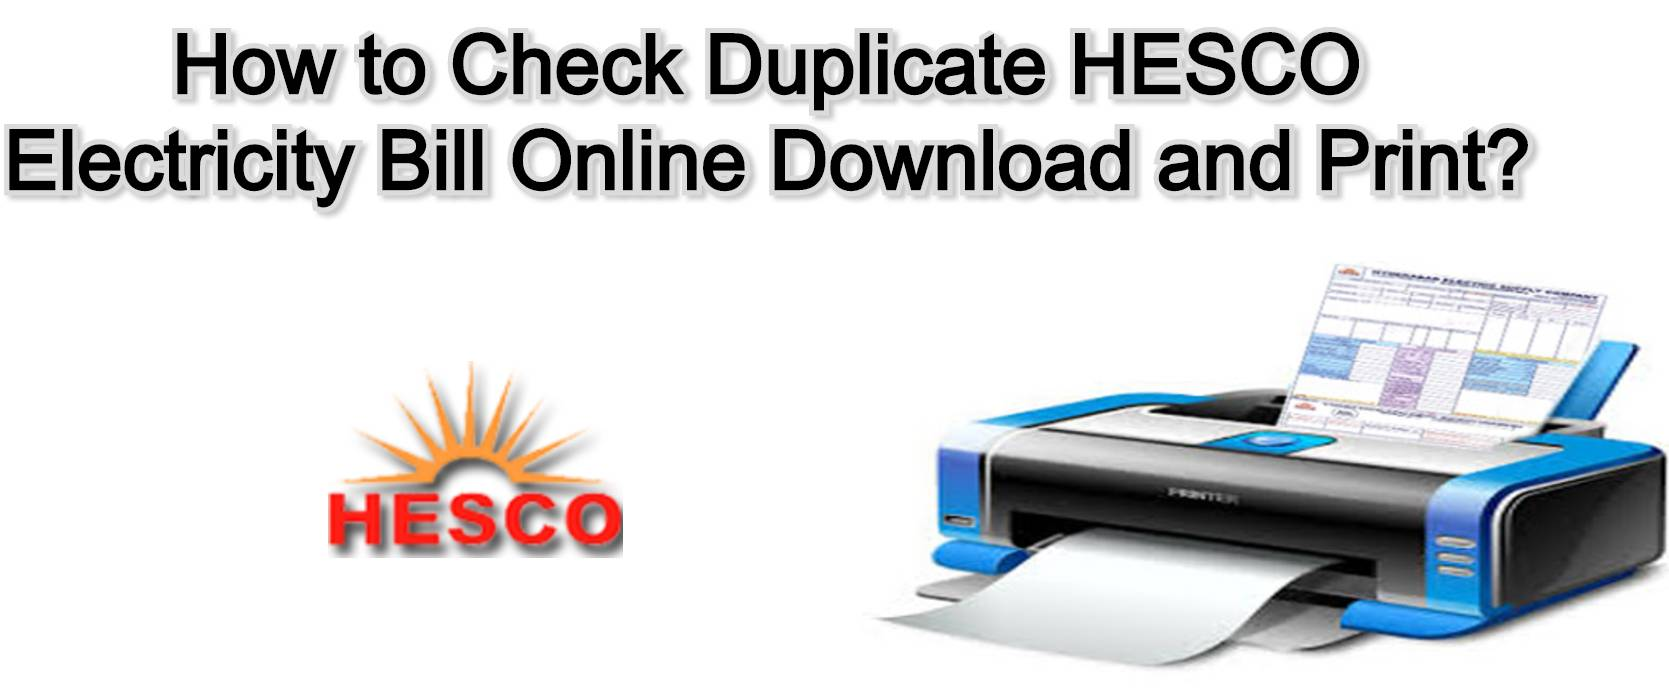 Hesco online bill - How to Check Duplicate HESCO Electricity Bill Online Download and Print?